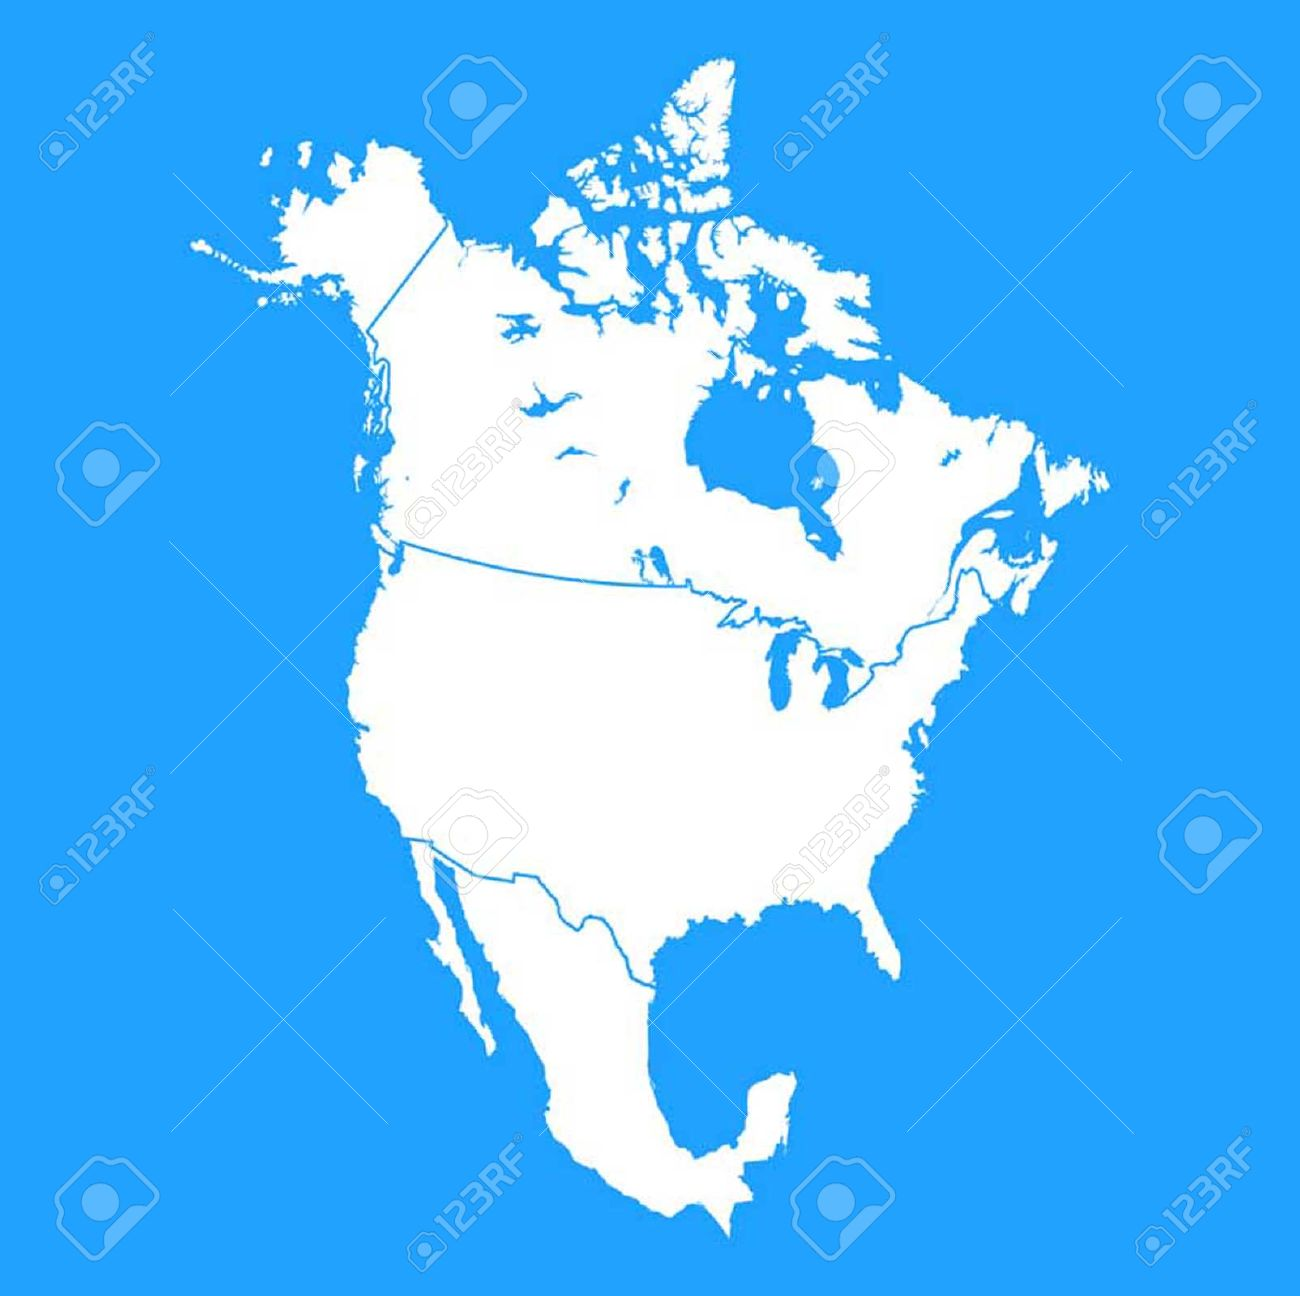 North America Map Including US Mexico And Canada Royalty Free - Canada north america map